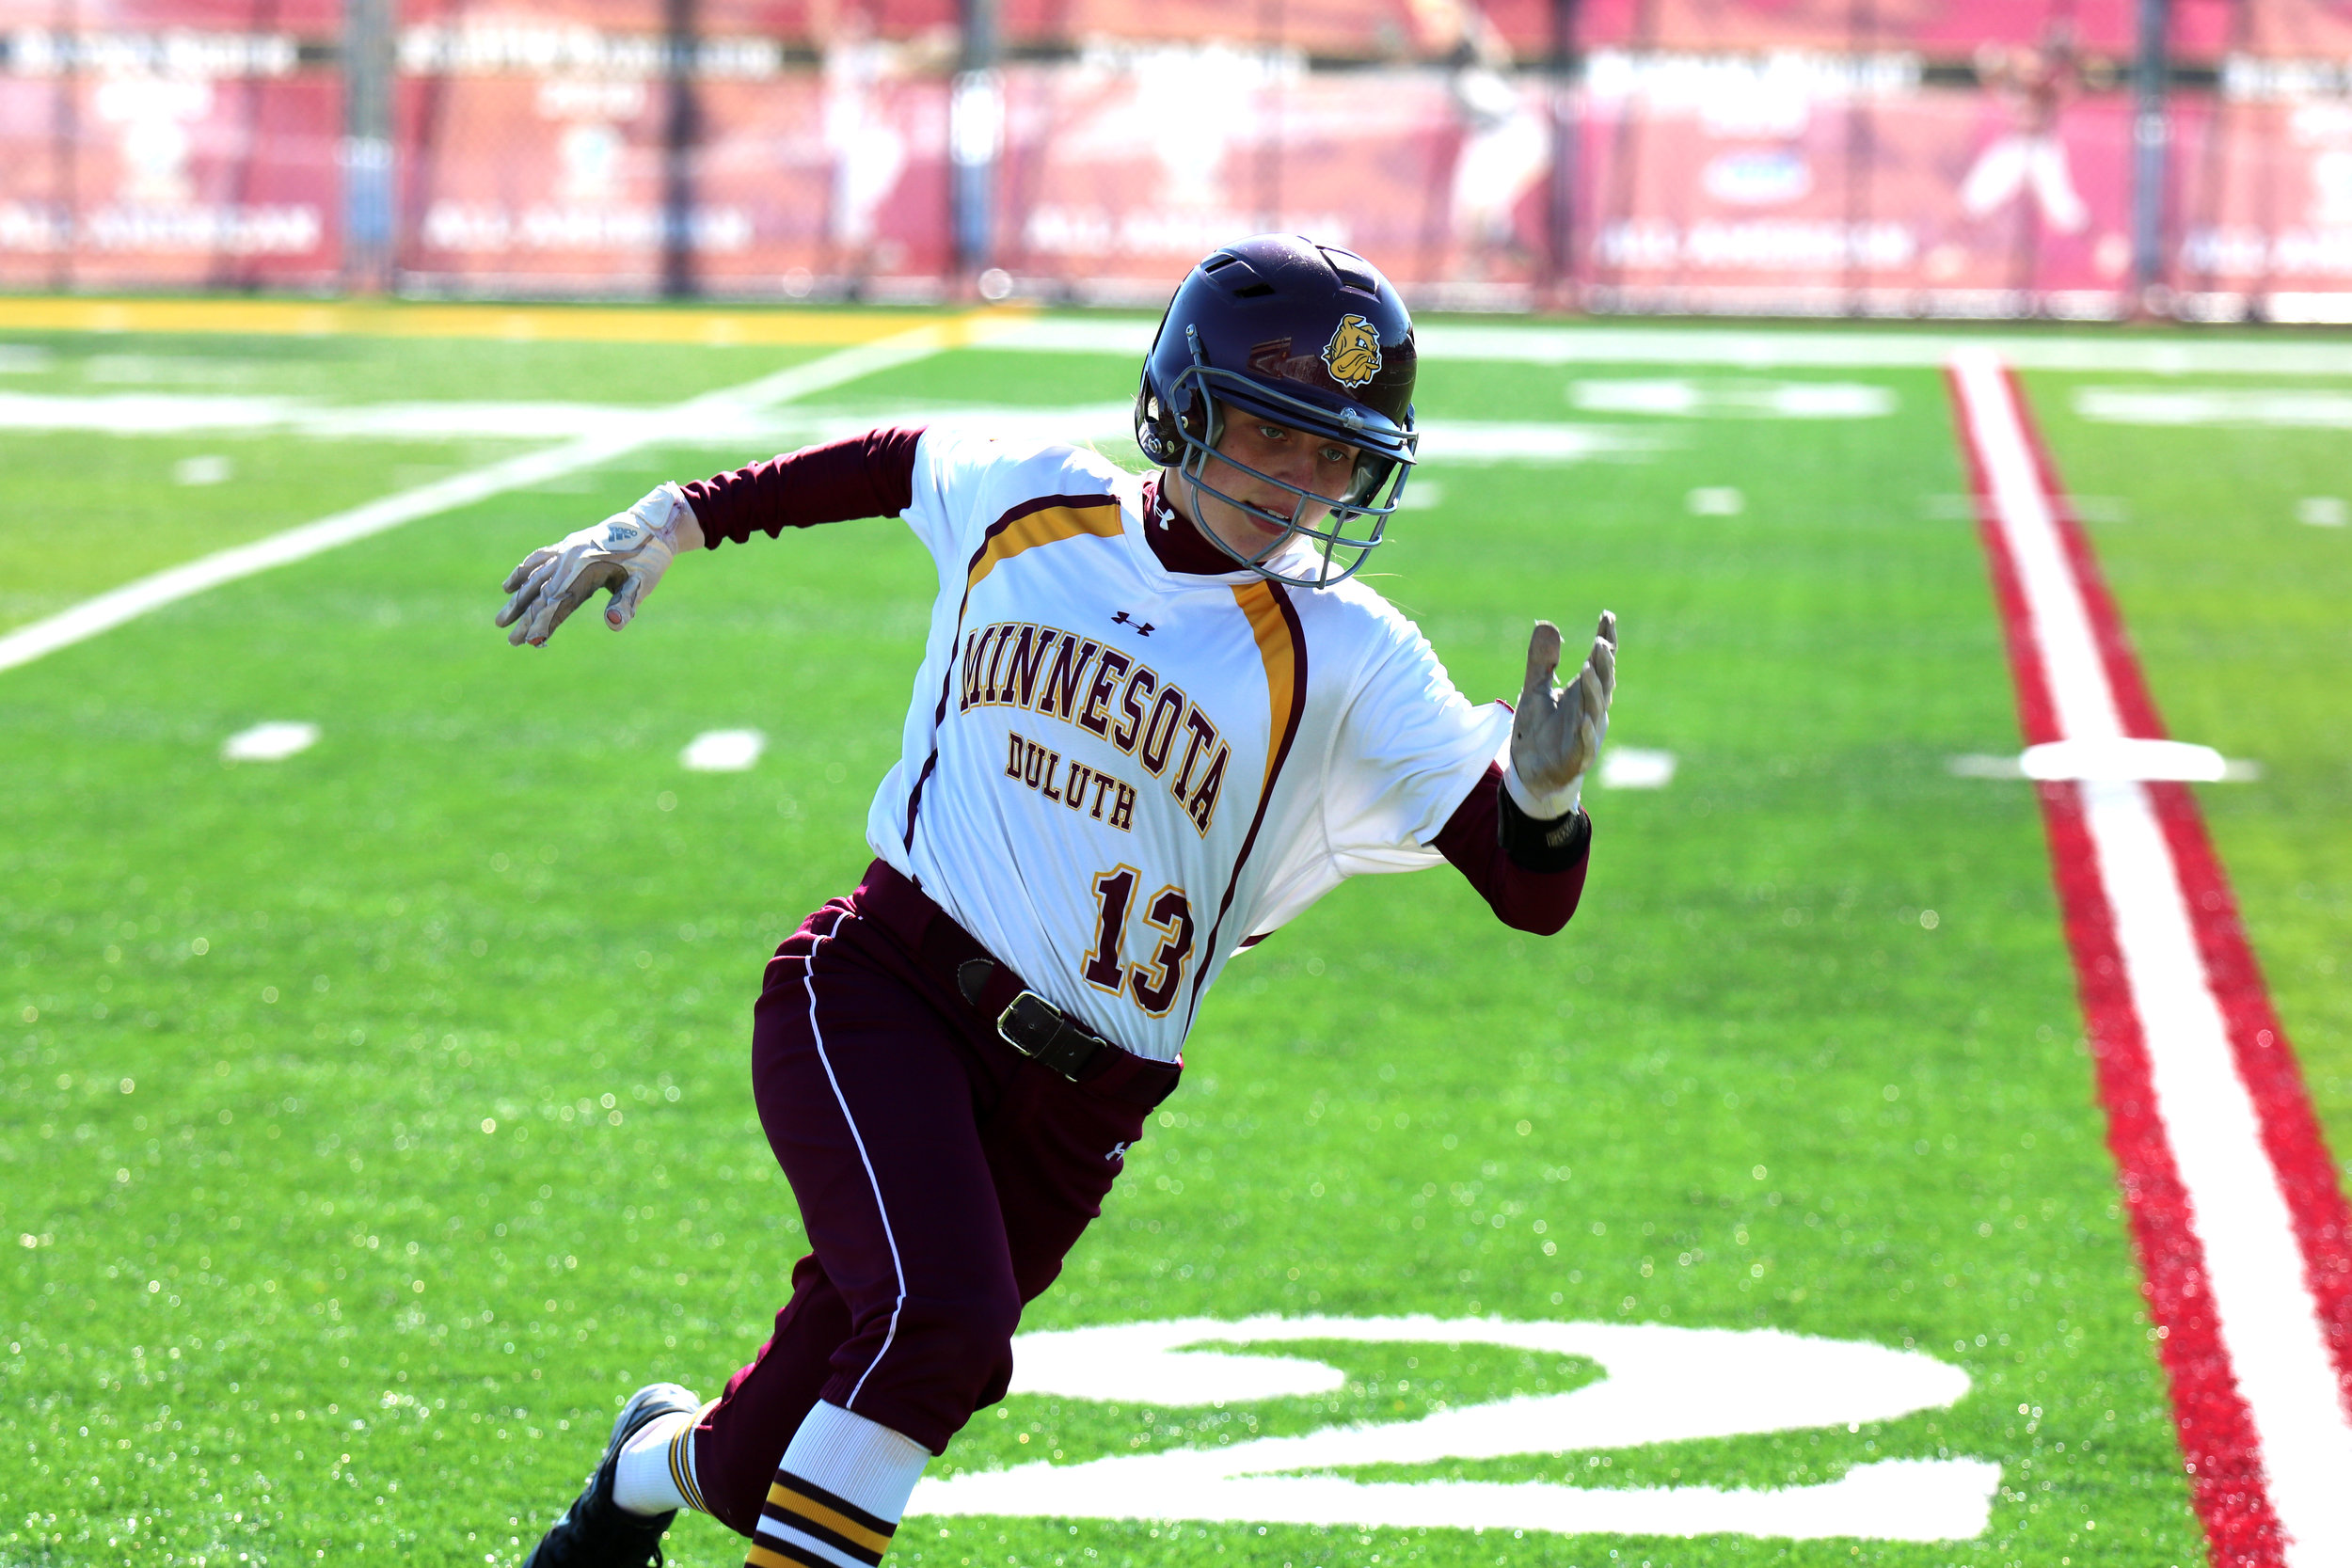 Junior outfielder Lauren Greeder runs the bases against St. Cloud State. Photo by: Drew Smith